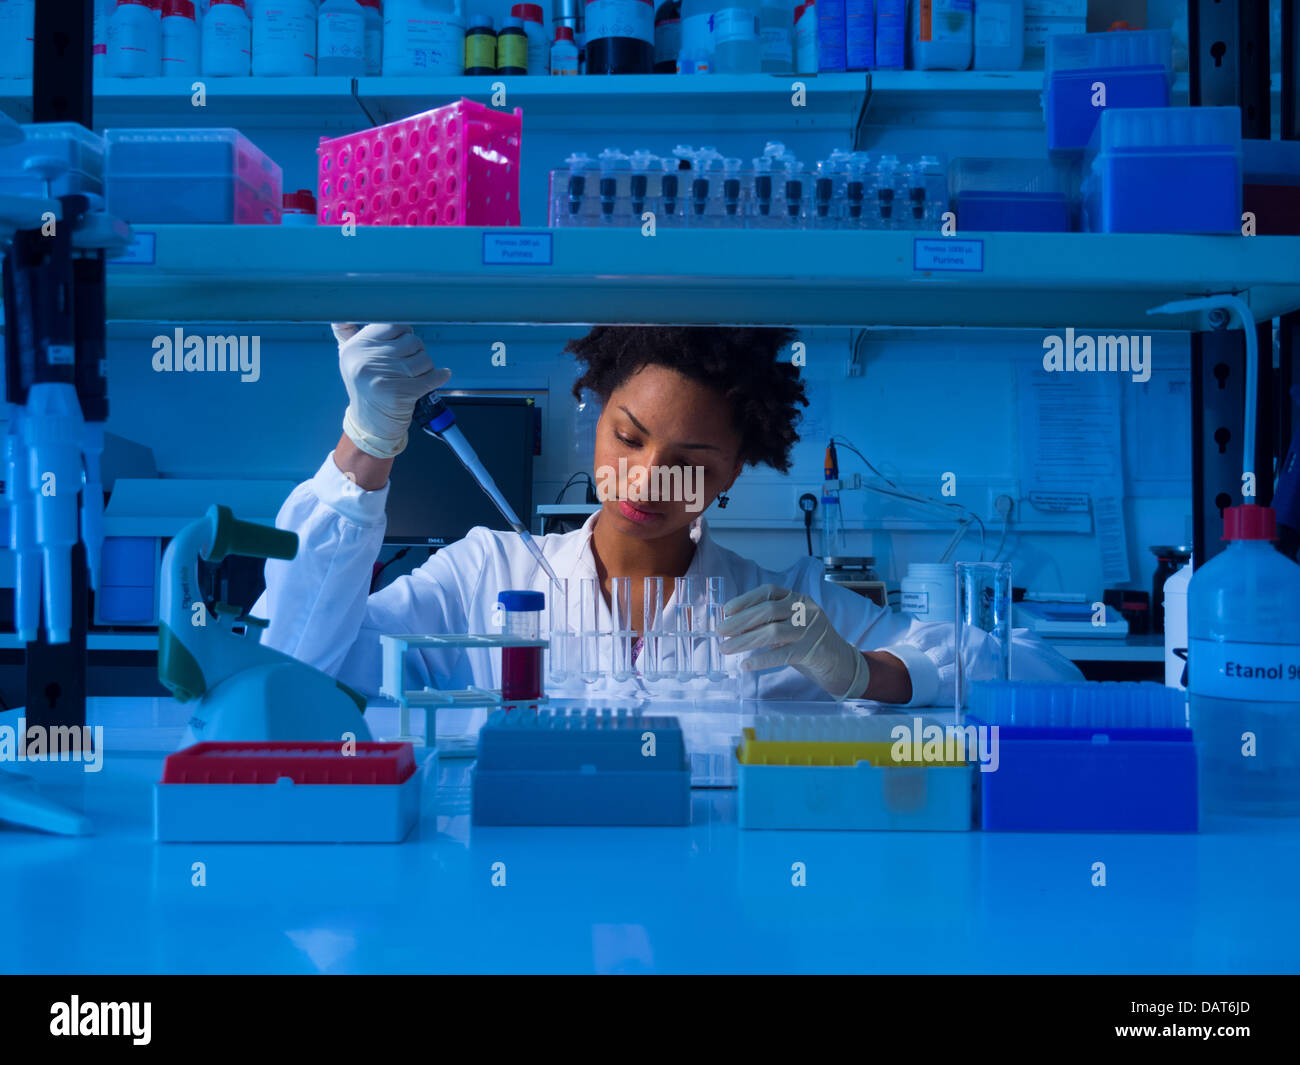 Scientist working in lab Banque D'Images